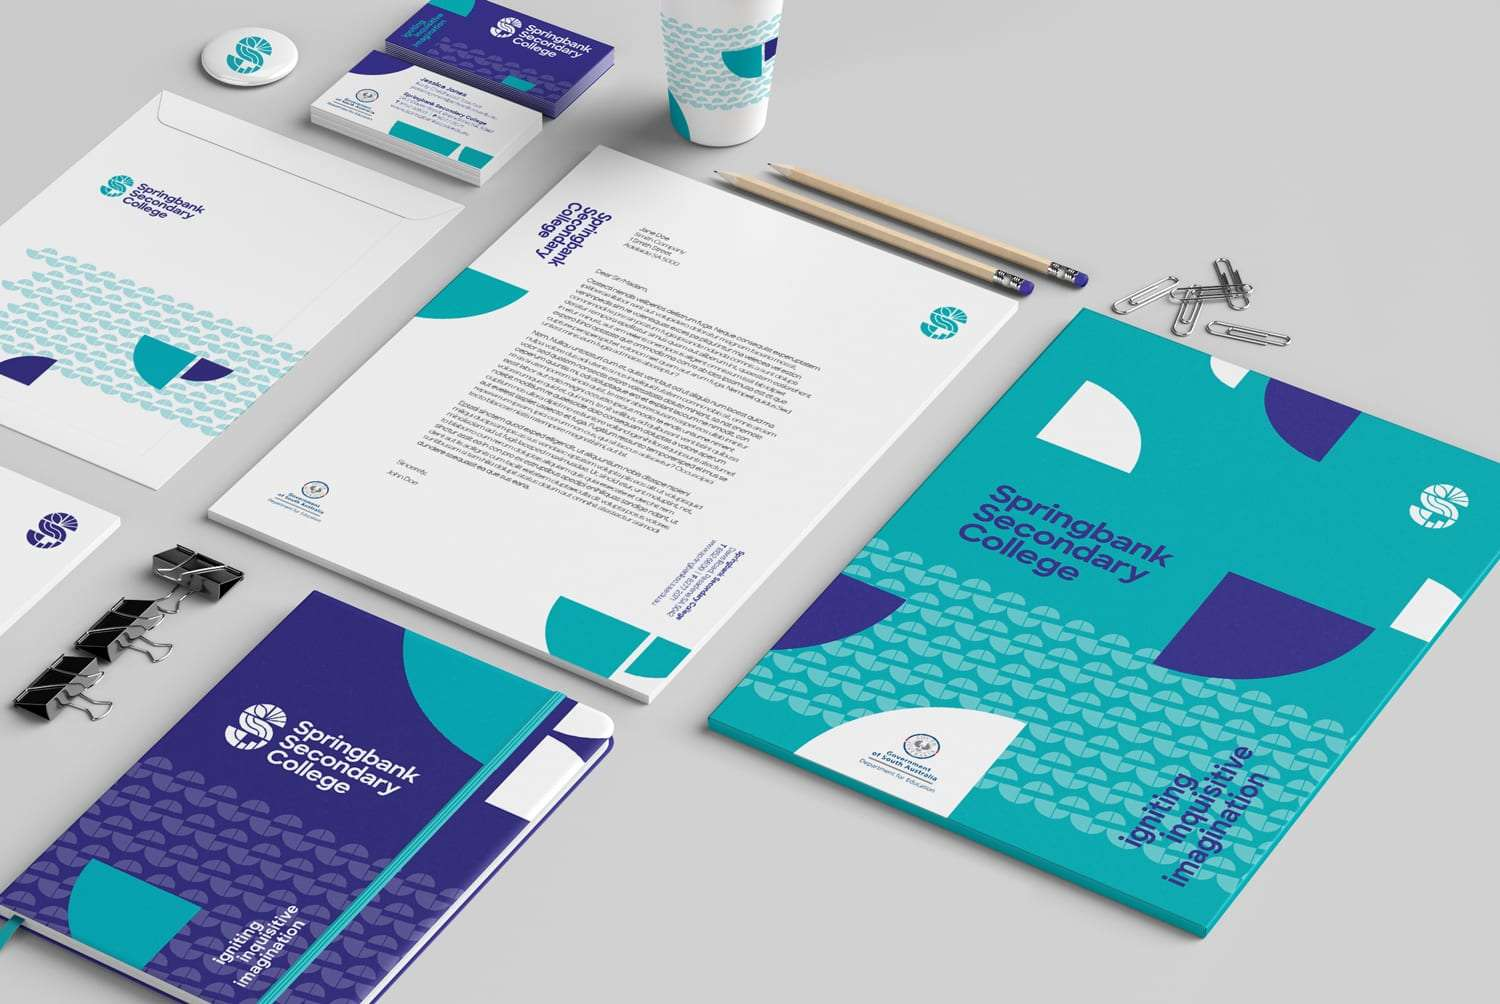 Springbank College school stationery and folder design by Flux Visual Communication